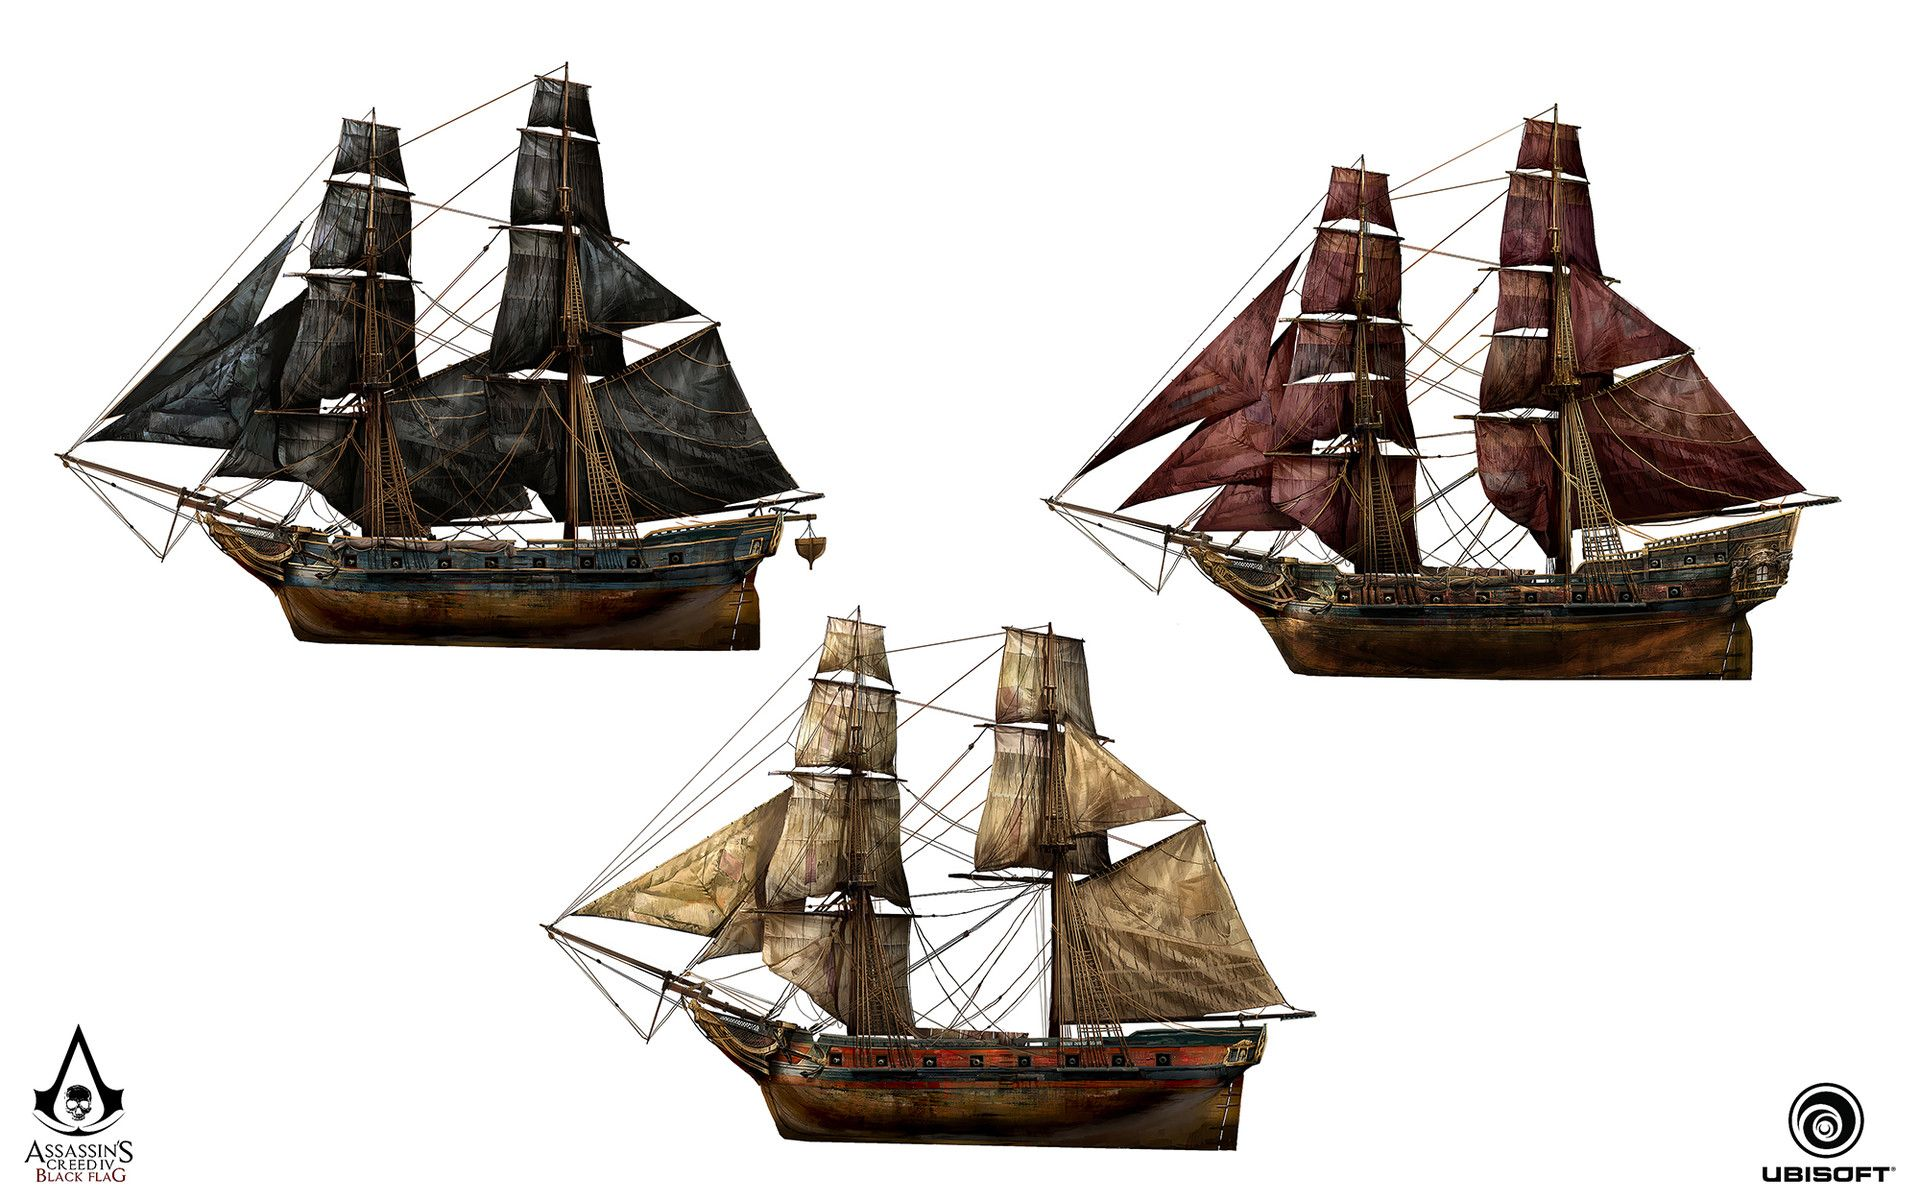 Assassin S Creed Iv Black Flag Jackdaw And The Rouge Design Teo Yong Jin Assassins Creed Black Flag Assassins Creed Jackdaw